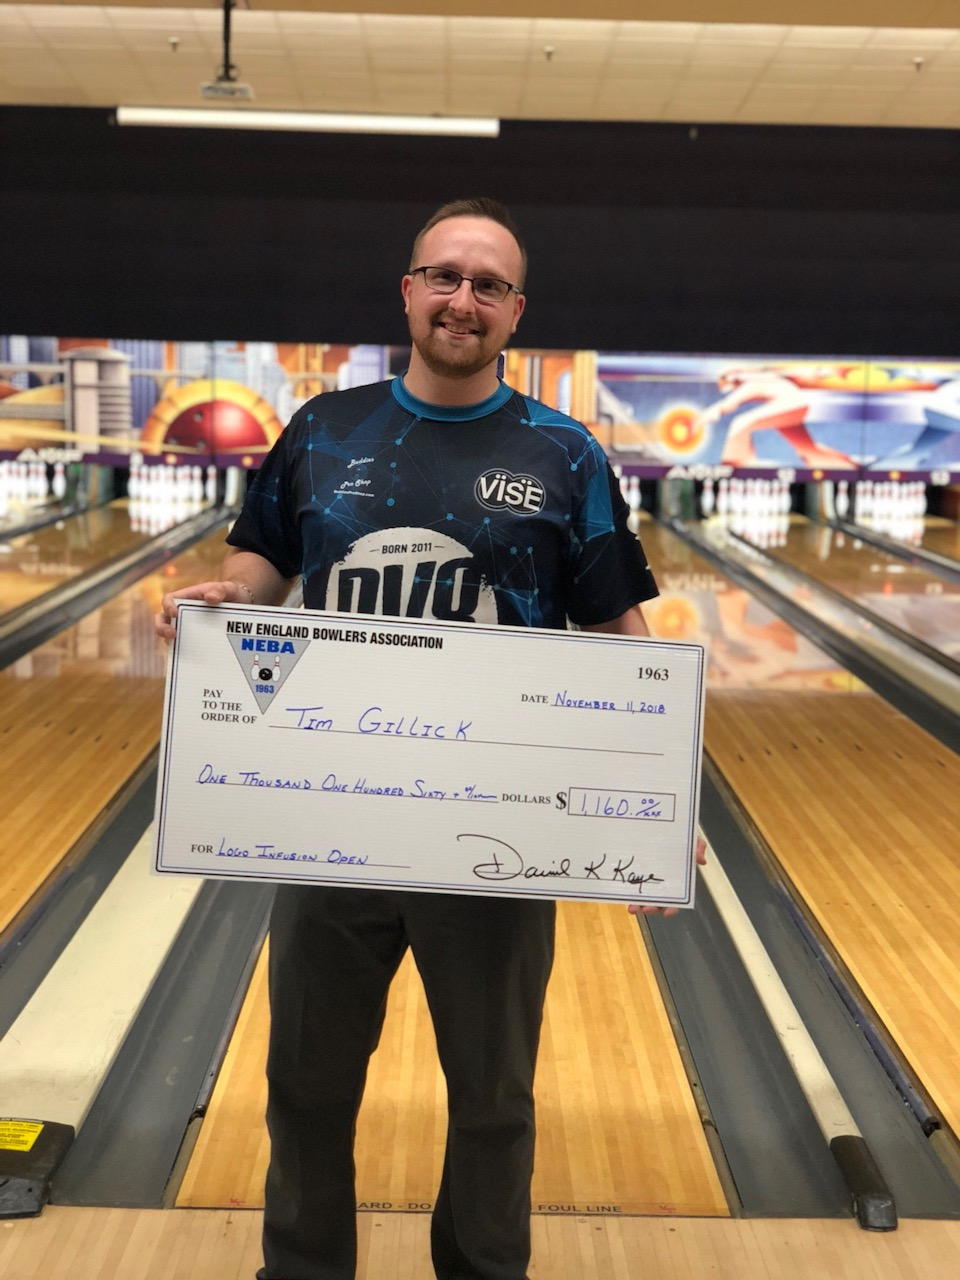 Tim Gillick Champ at Logo Infusion Open for 2nd Title